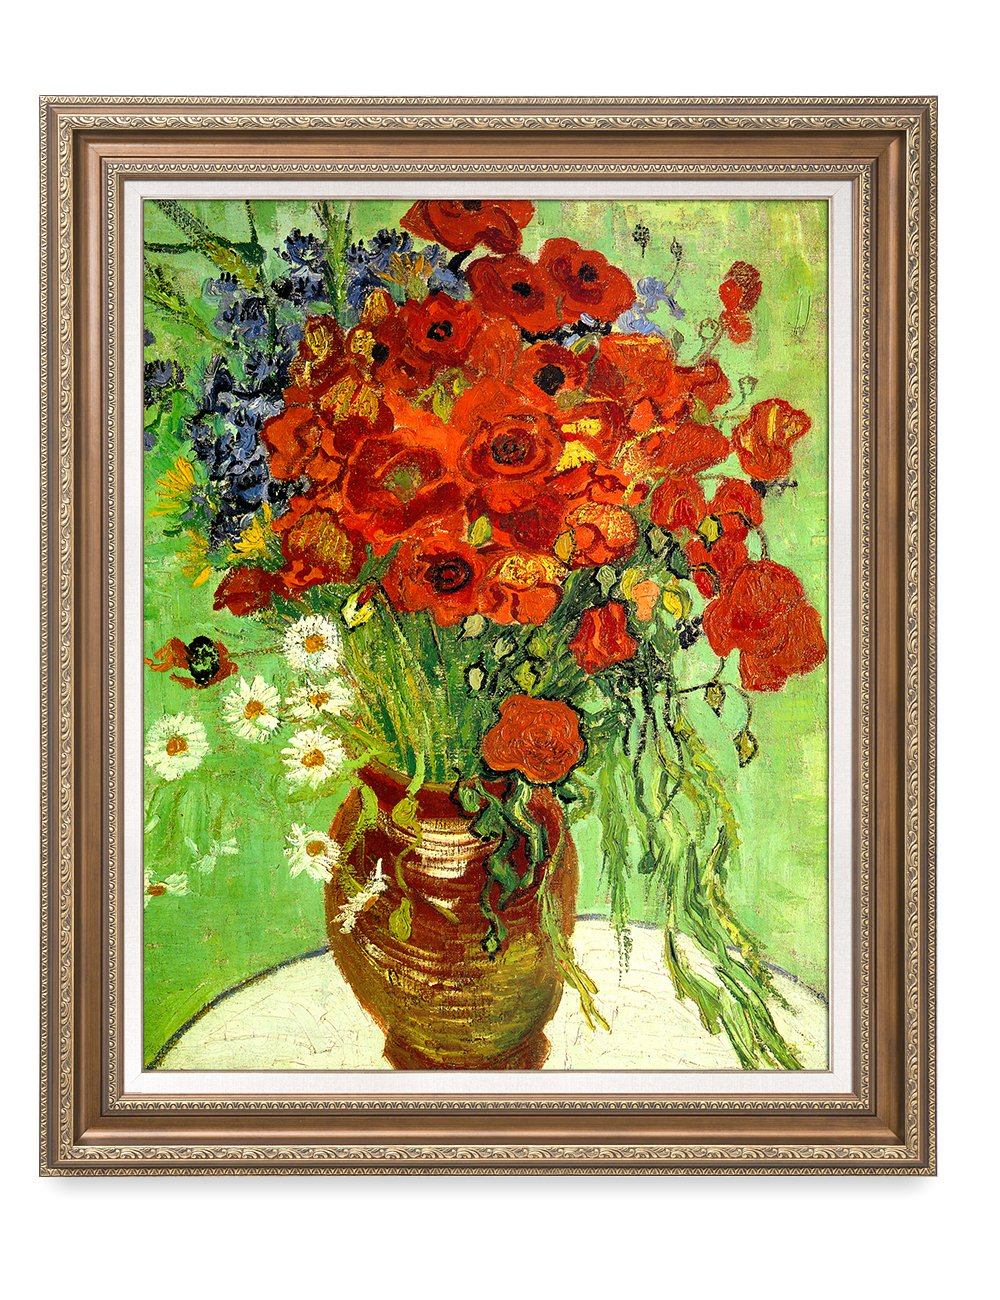 DecorArts - Red Poppies and Daisies, Vincent Van Gogh Art Reproduction. Giclee Print& Framed Art for Wall Decor. 30x24'', Framed size: 35x29''